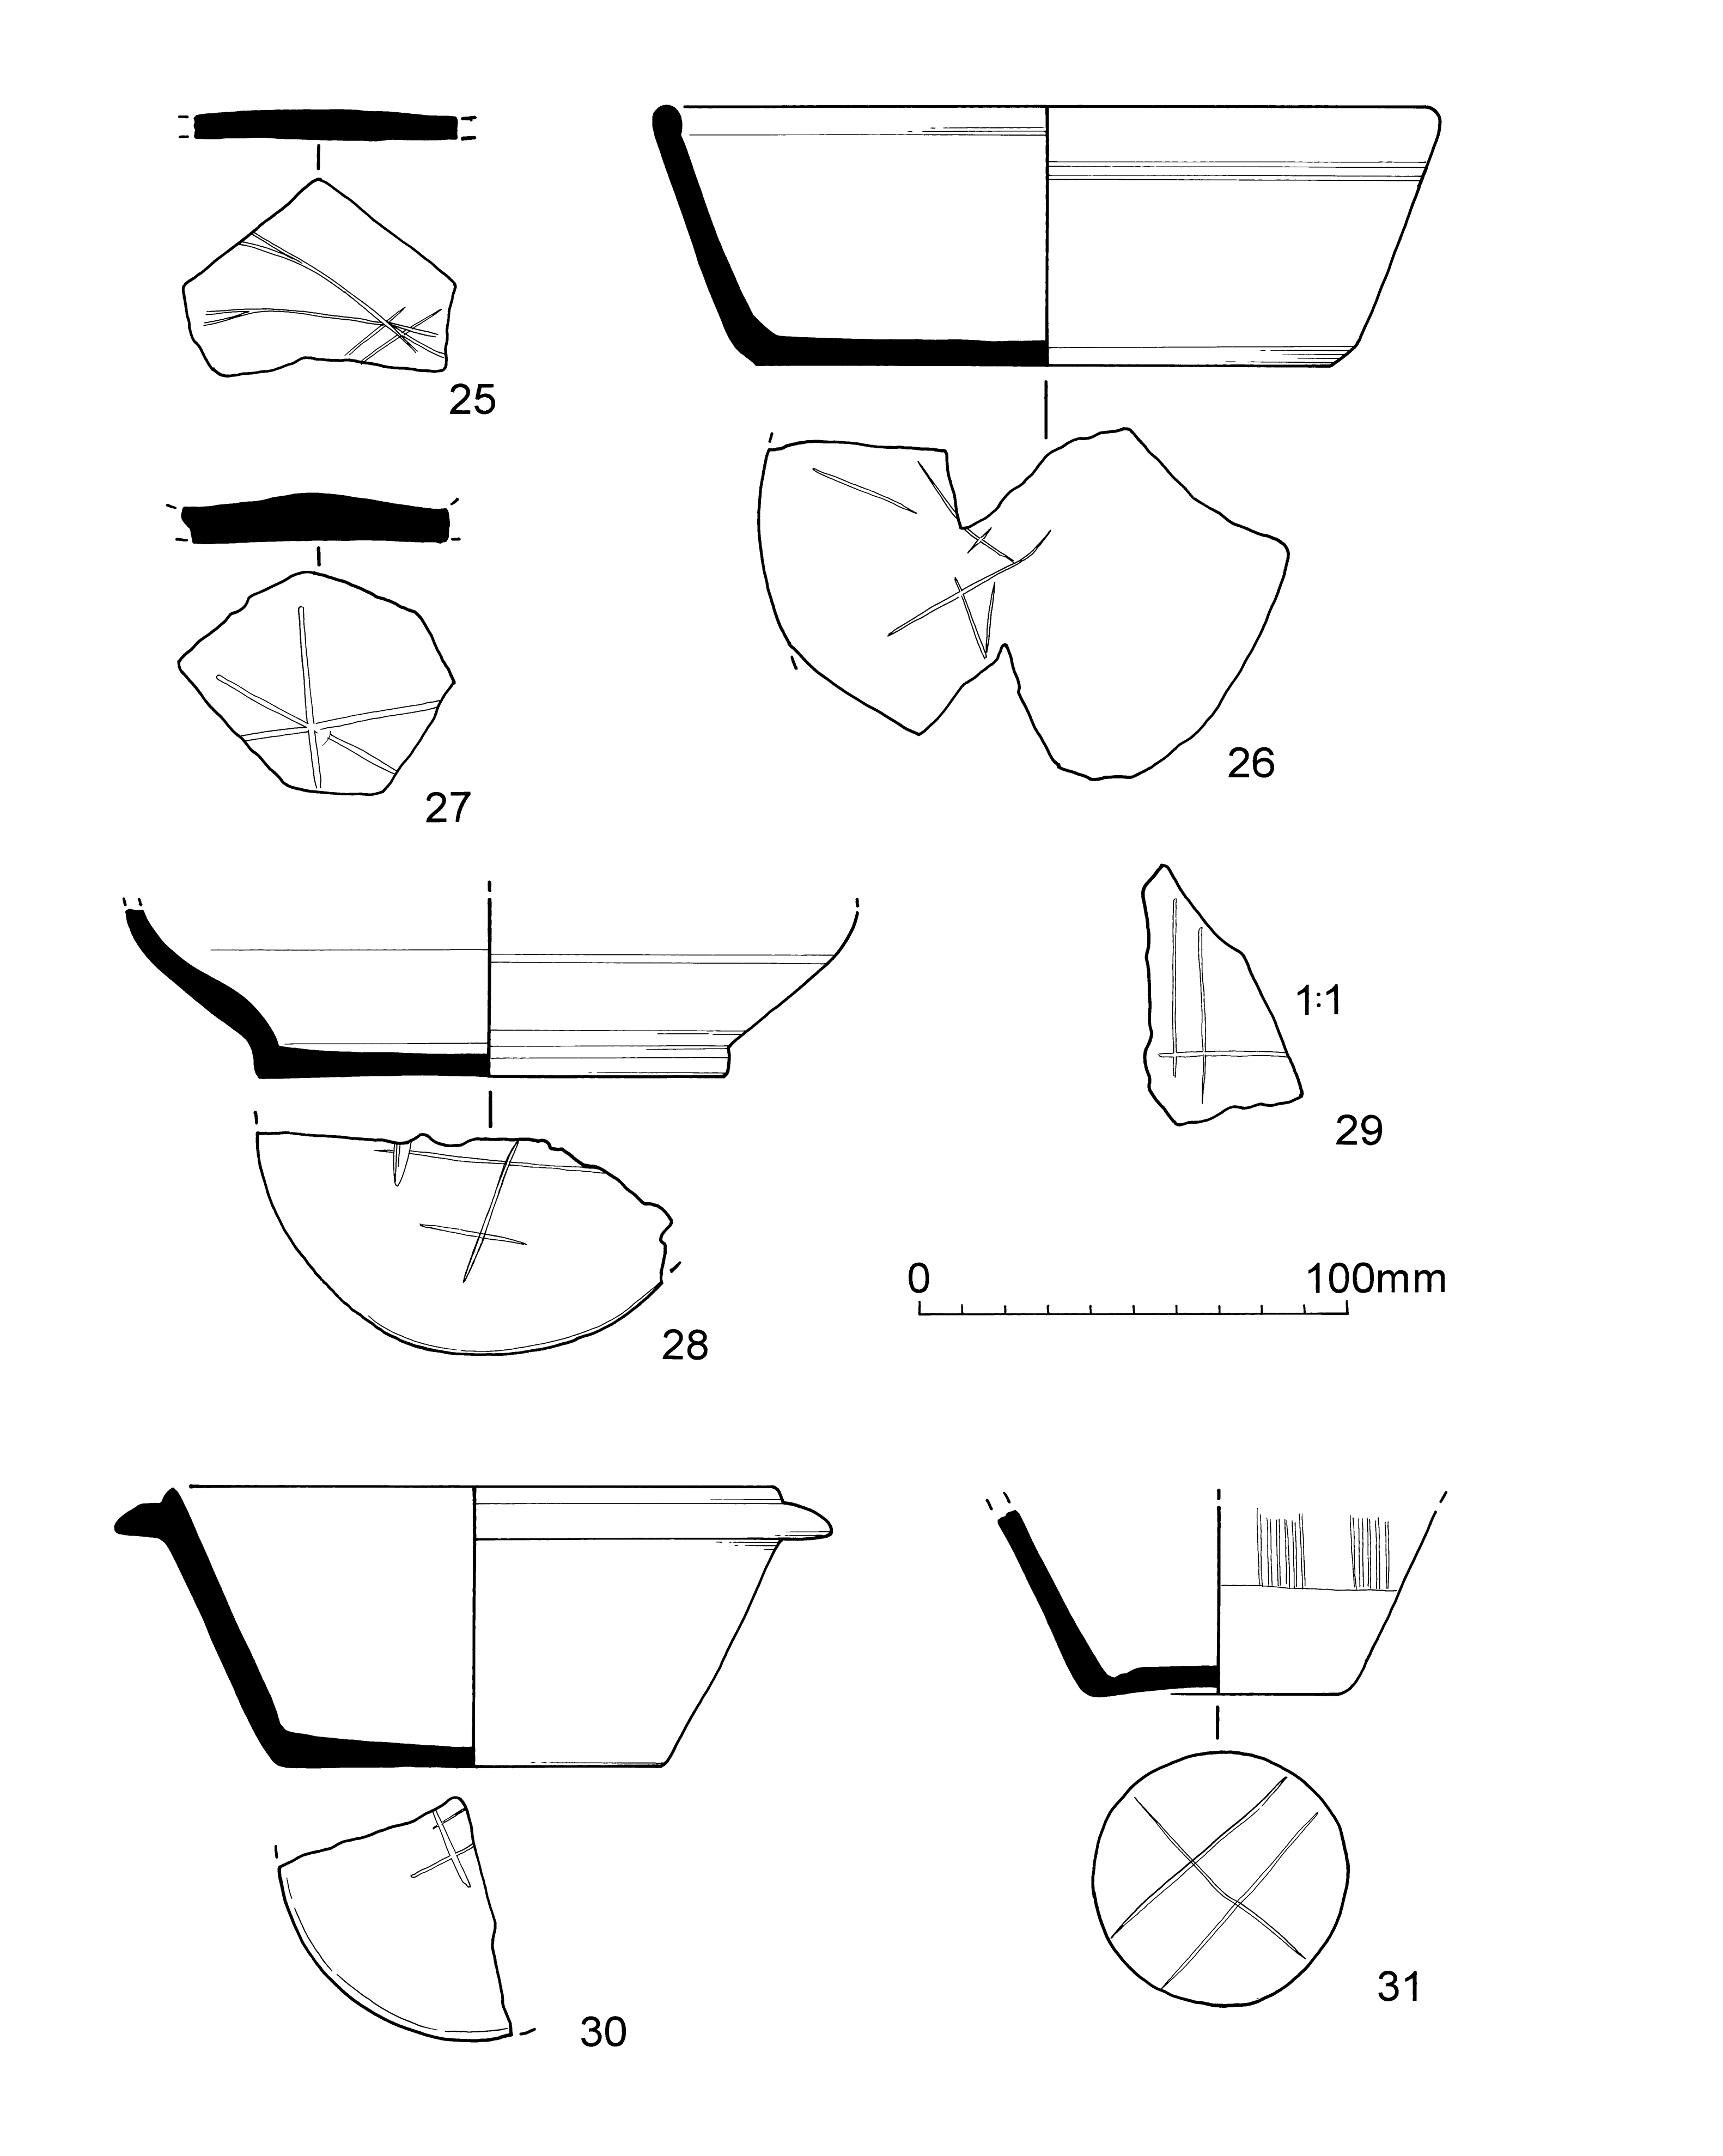 internet archaeol 40 atkinson and preston late iron age and roman Cover Letter for Any Job figure 326